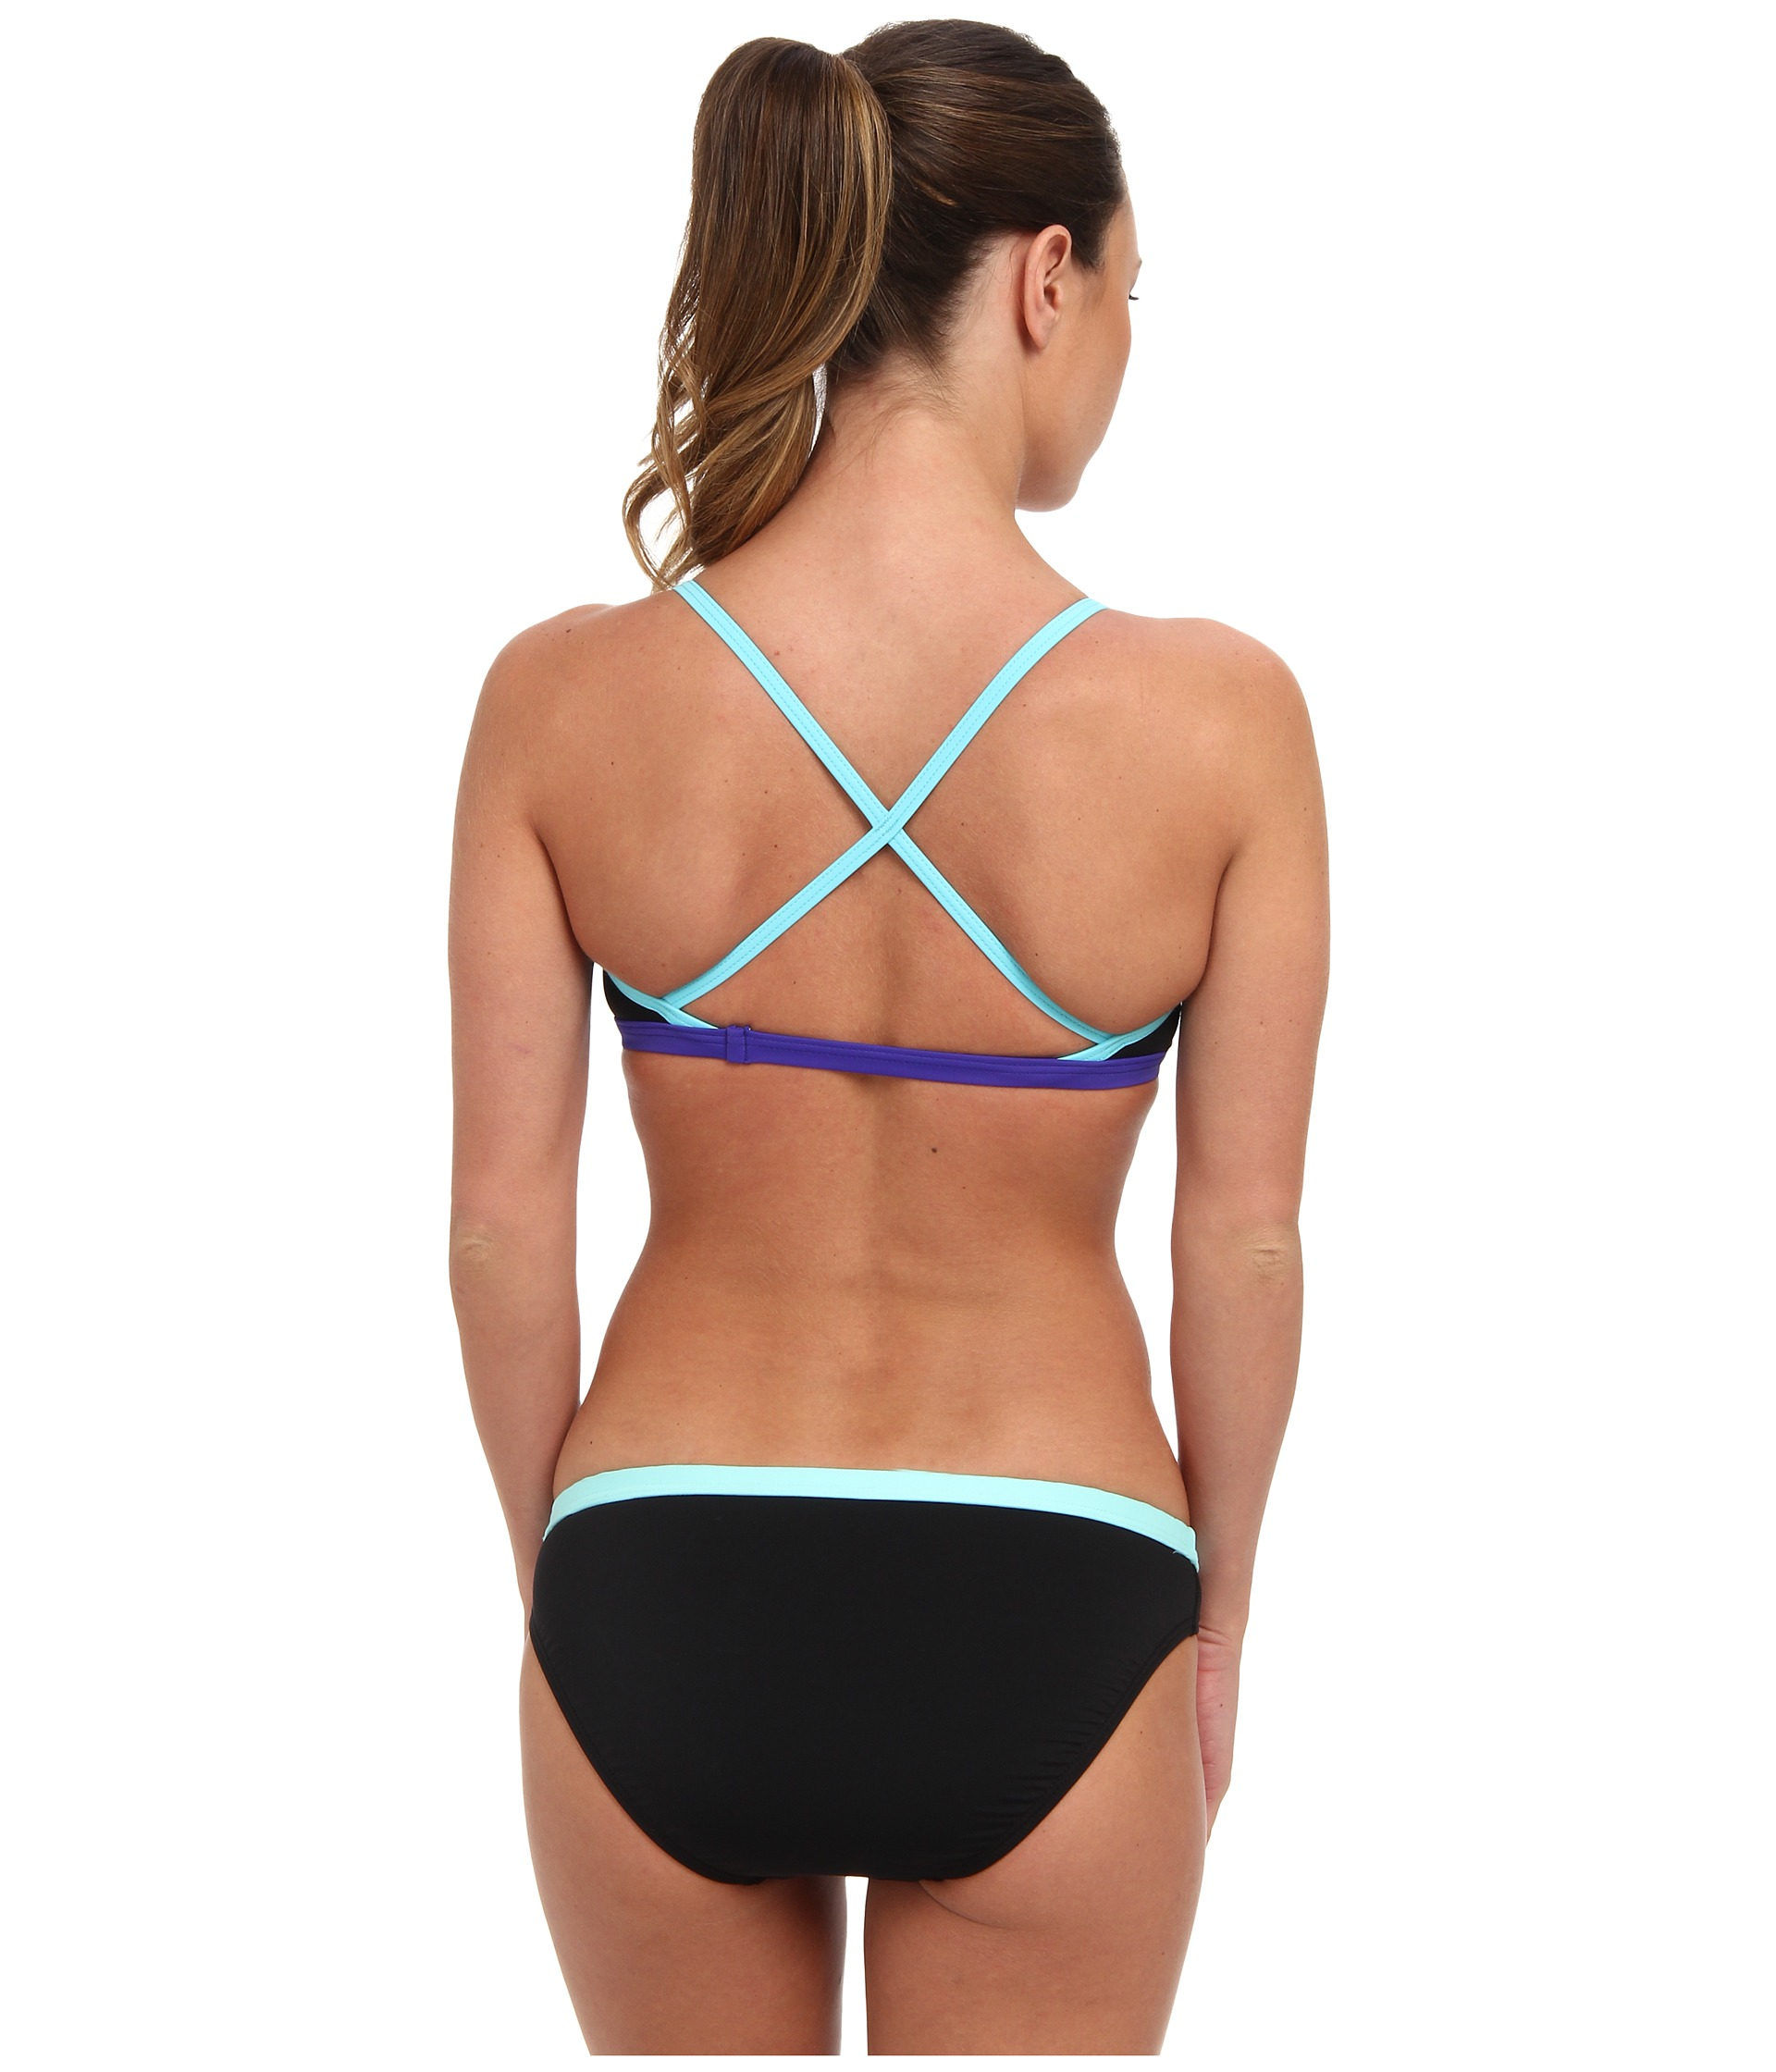 Agree, Solid microback workout bikini that's something